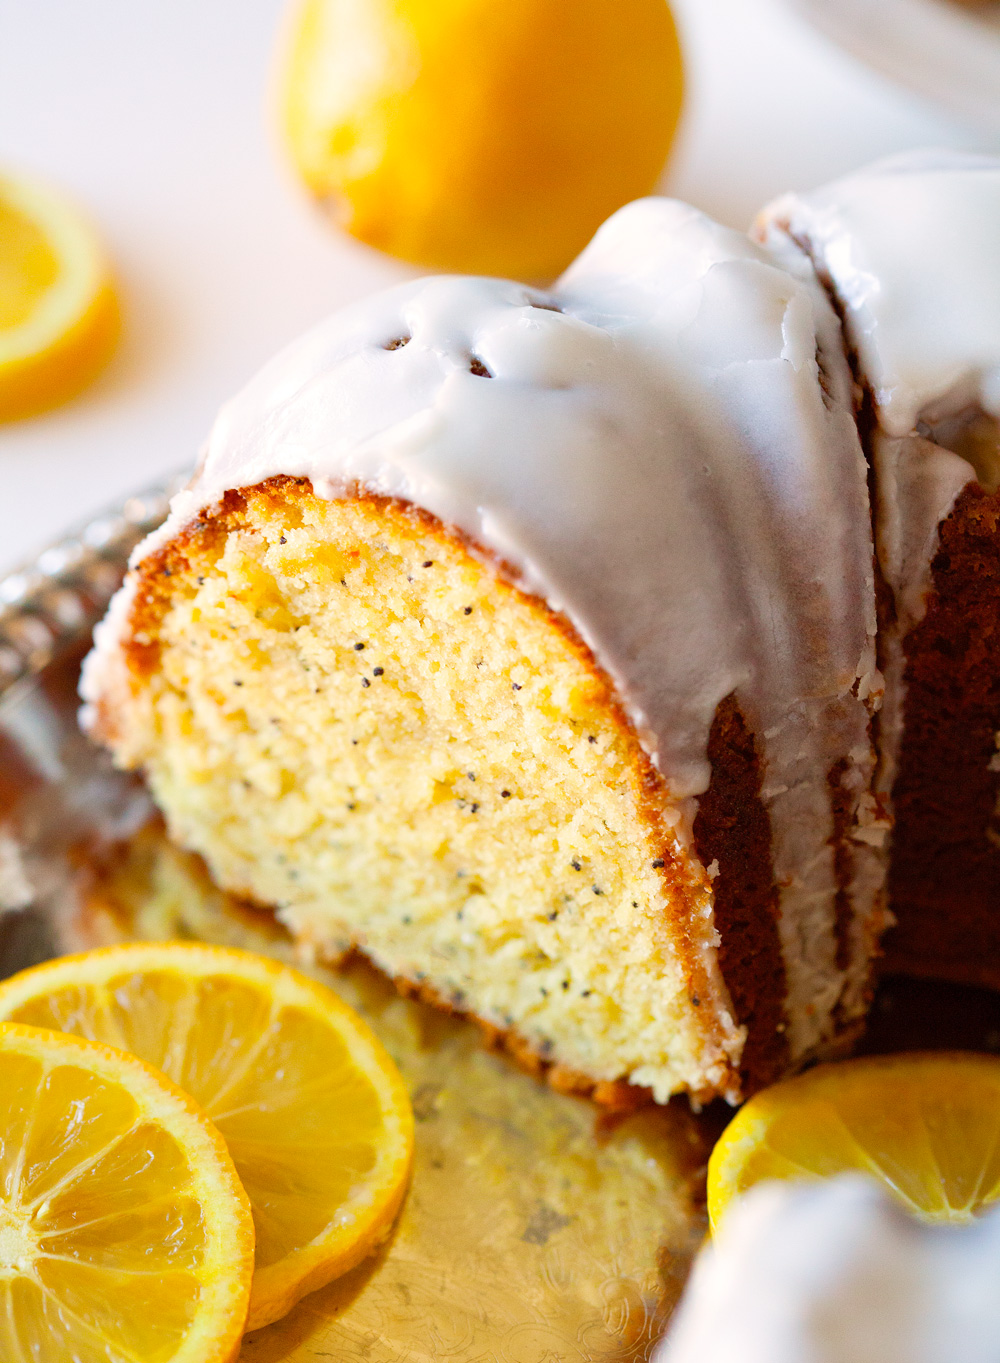 Betty Crocker Lemon Poppy Seed Bundt Cake